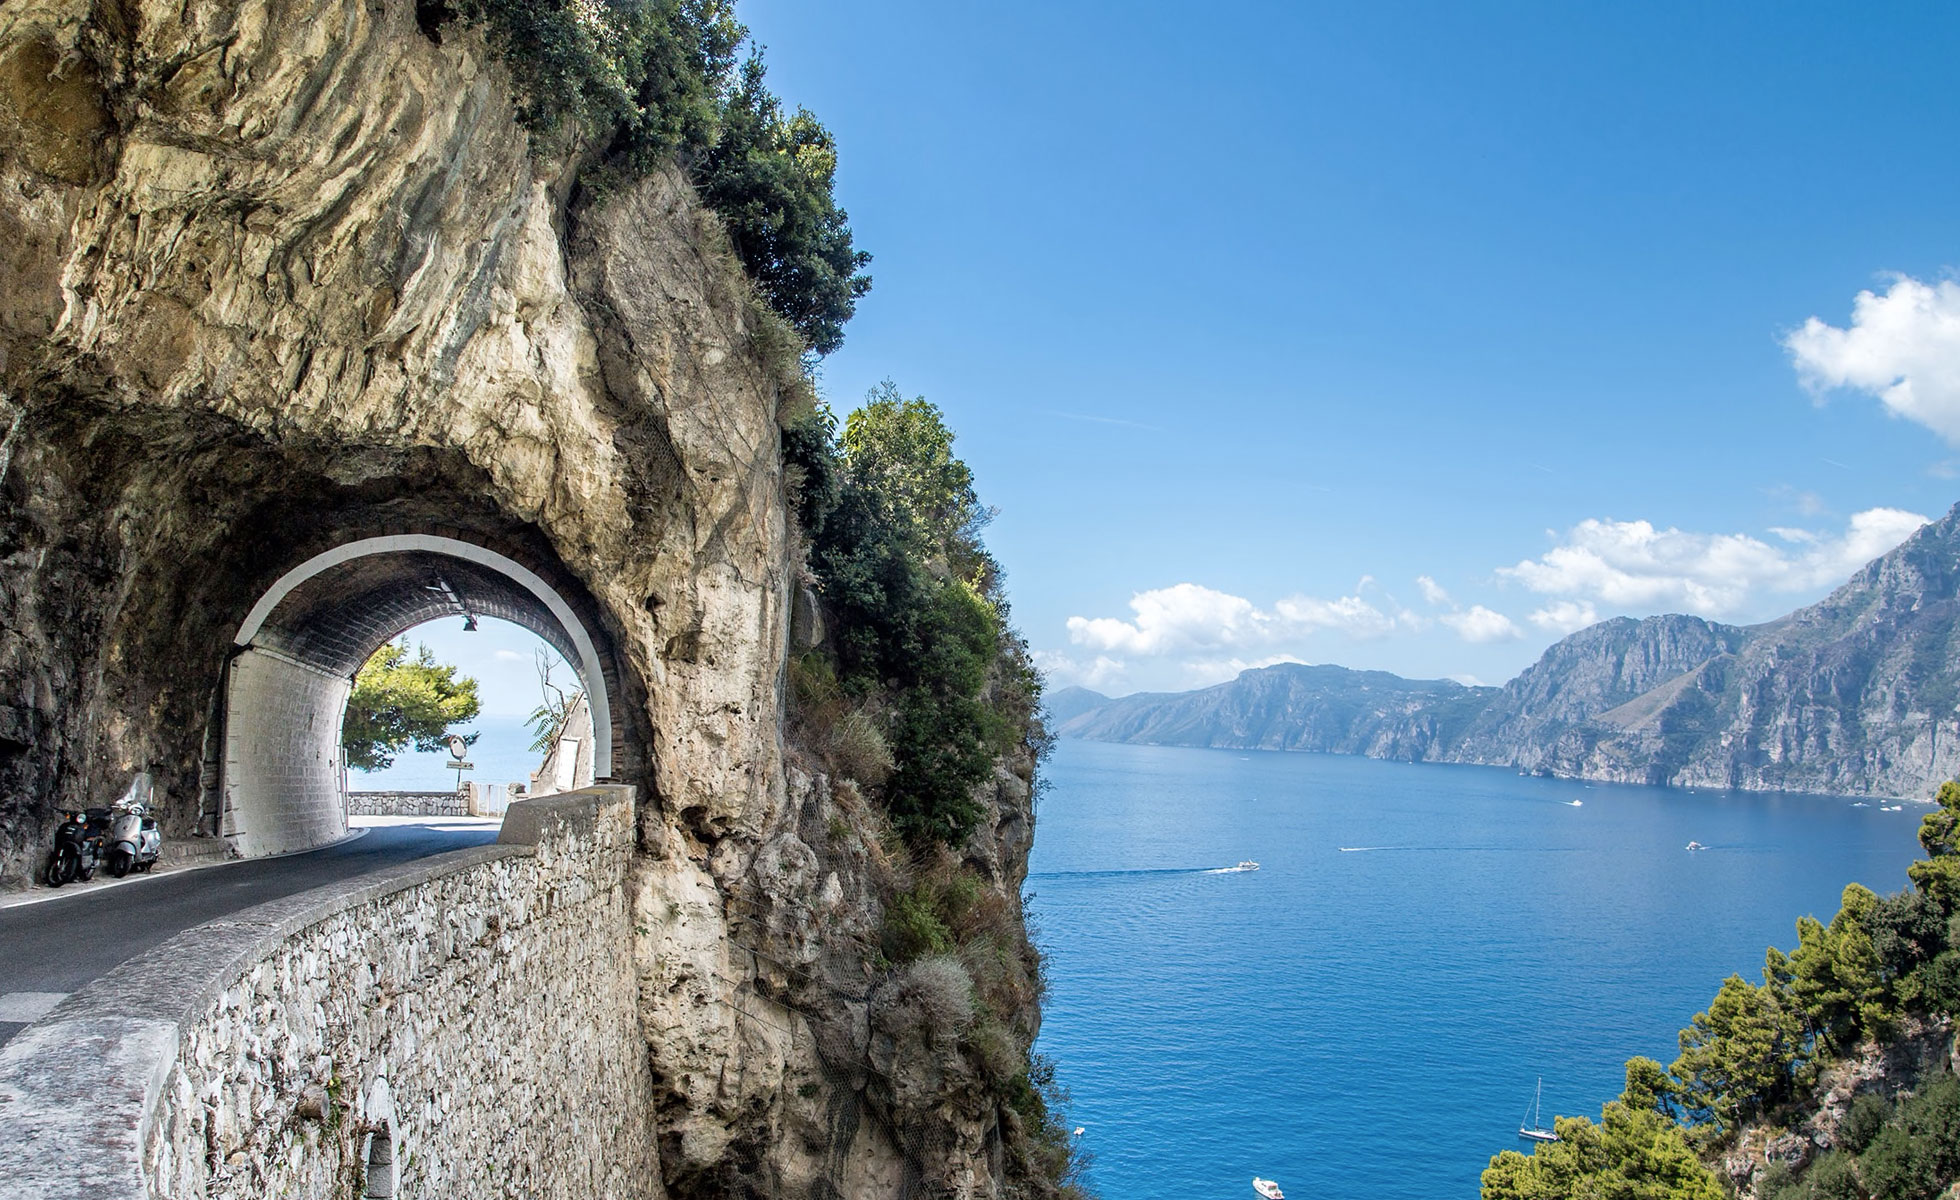 VISIT THE AMALFI COAST BY CAR!